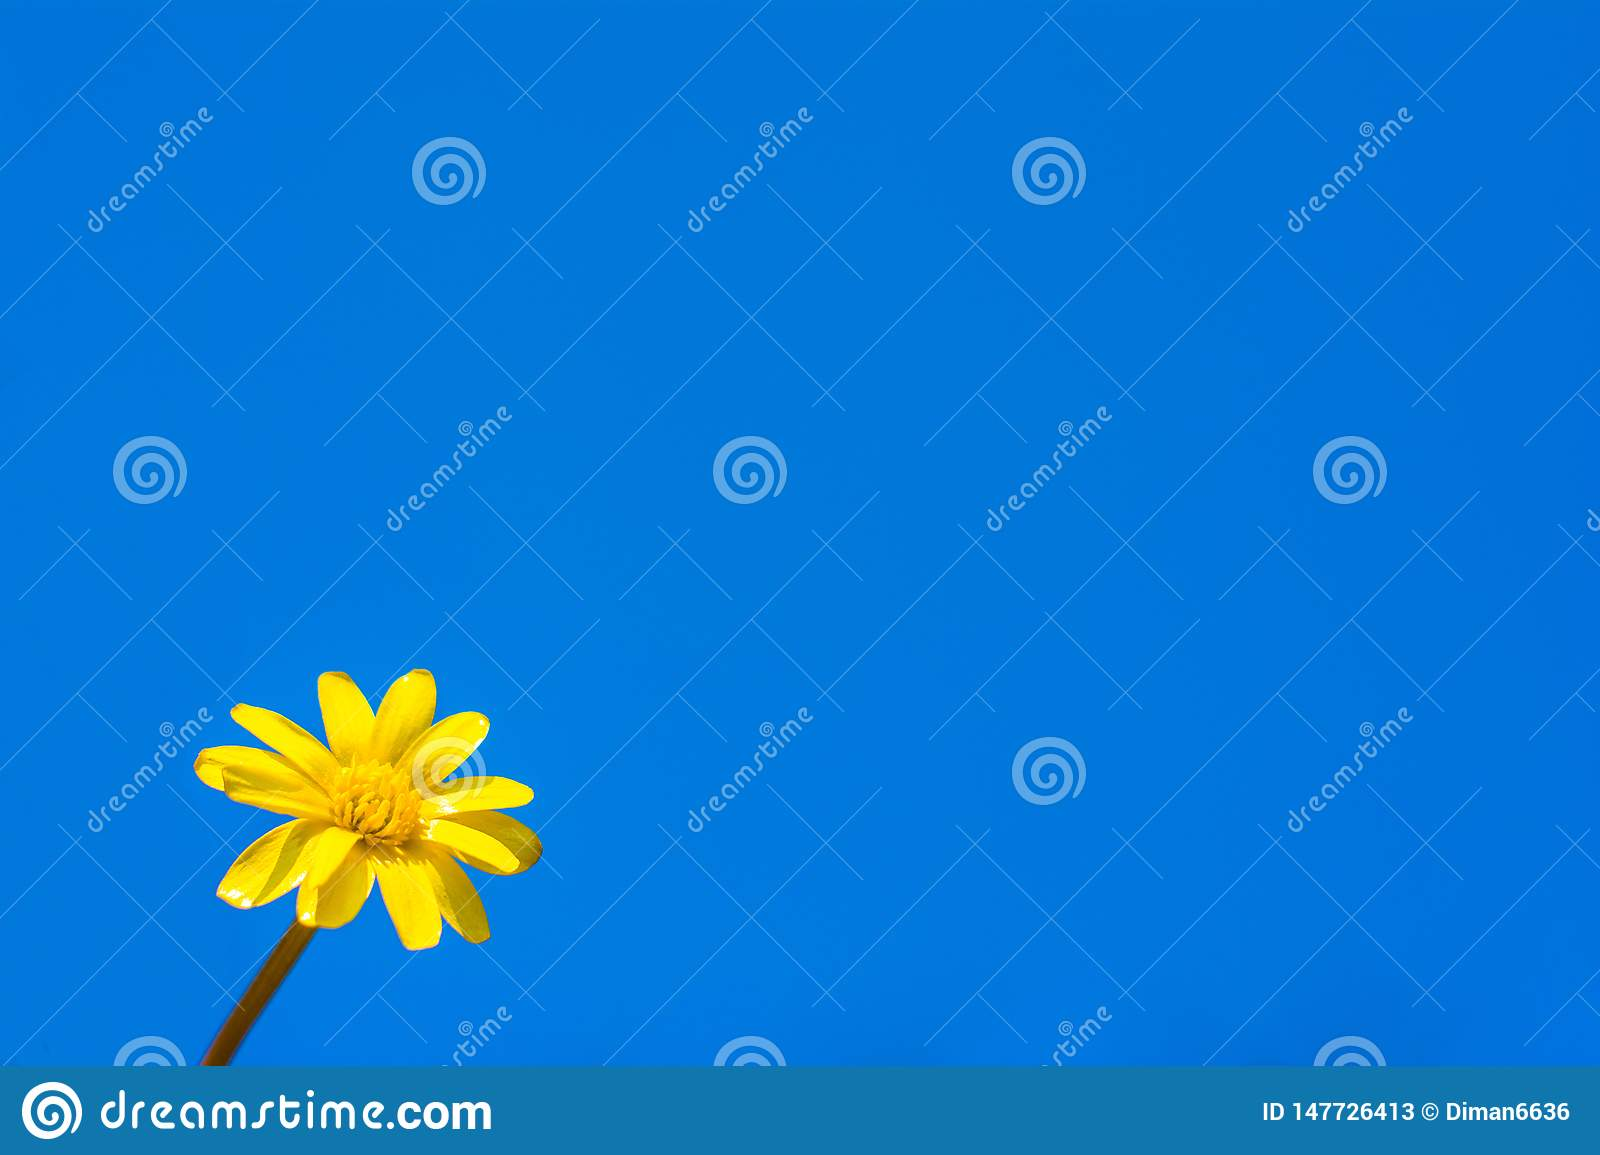 Chamomile on the background of the sky. Copyspace